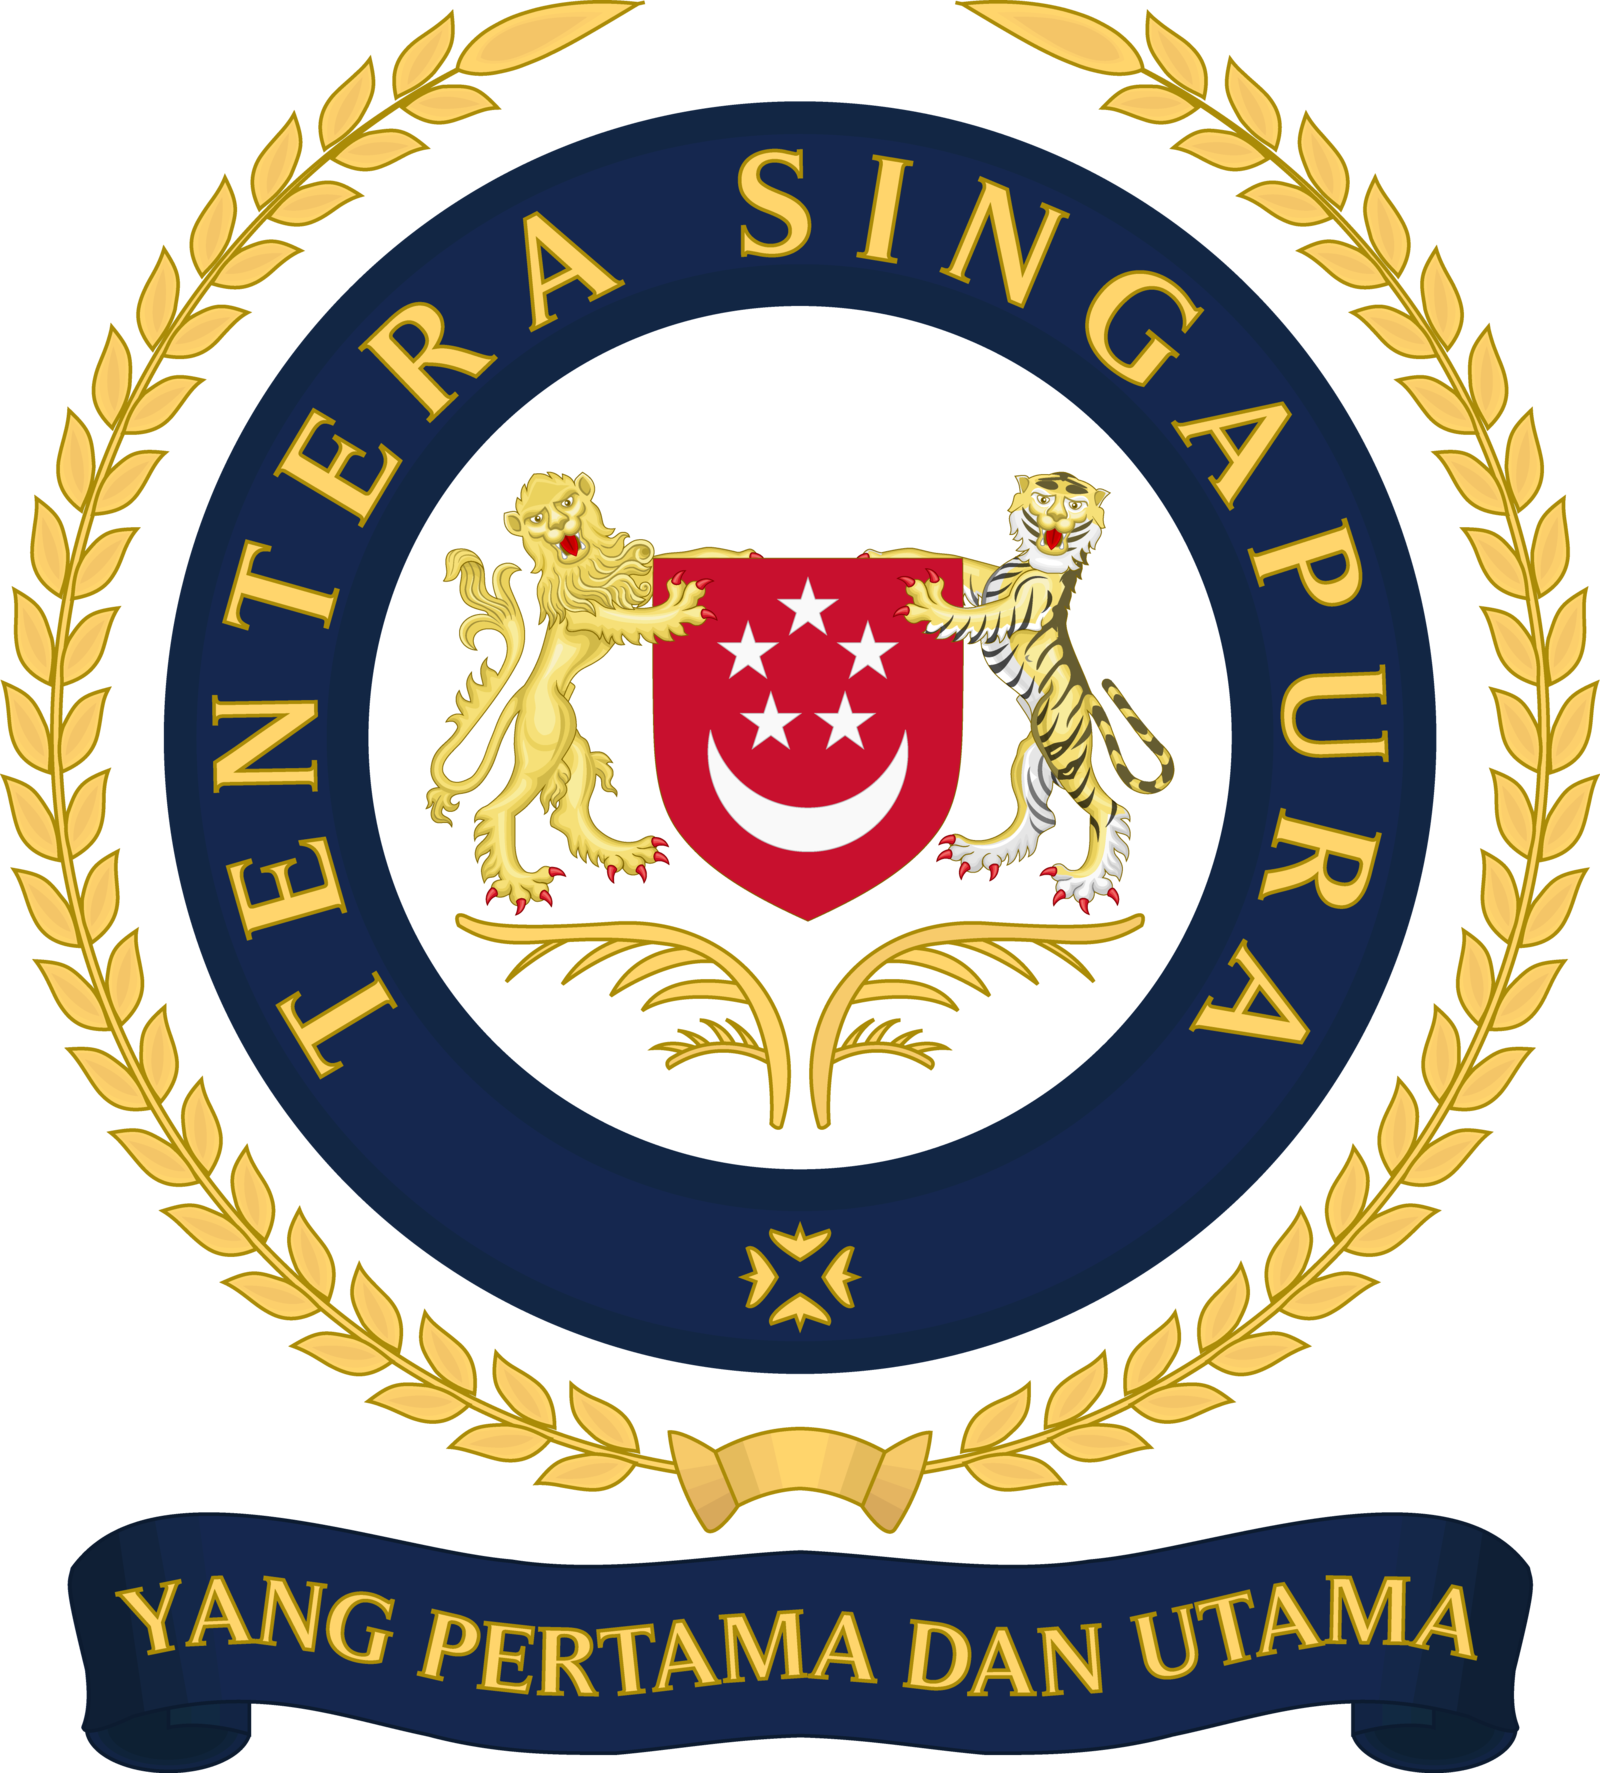 Singapore Armed Forces Logos